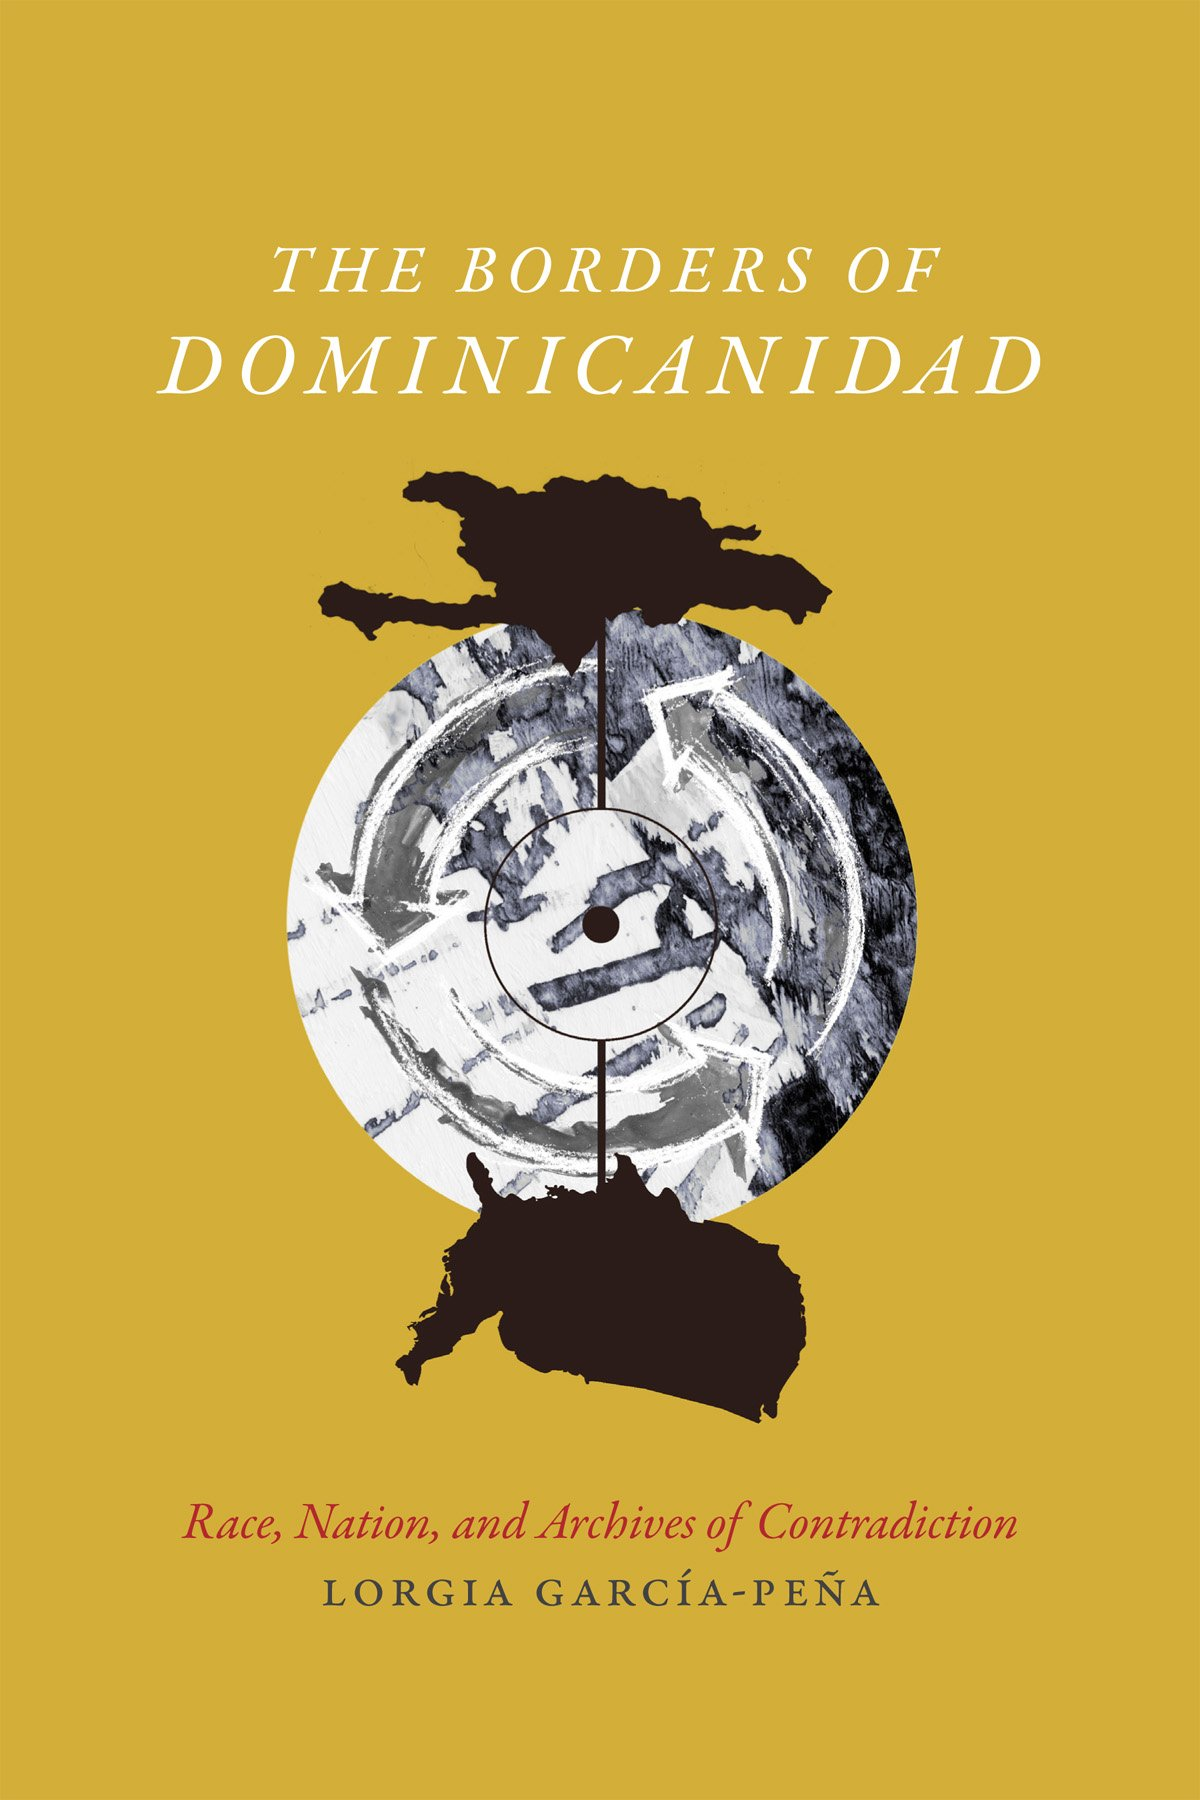 The Borders of Dominicanidad. Race, Nation and Archives of Contradiction